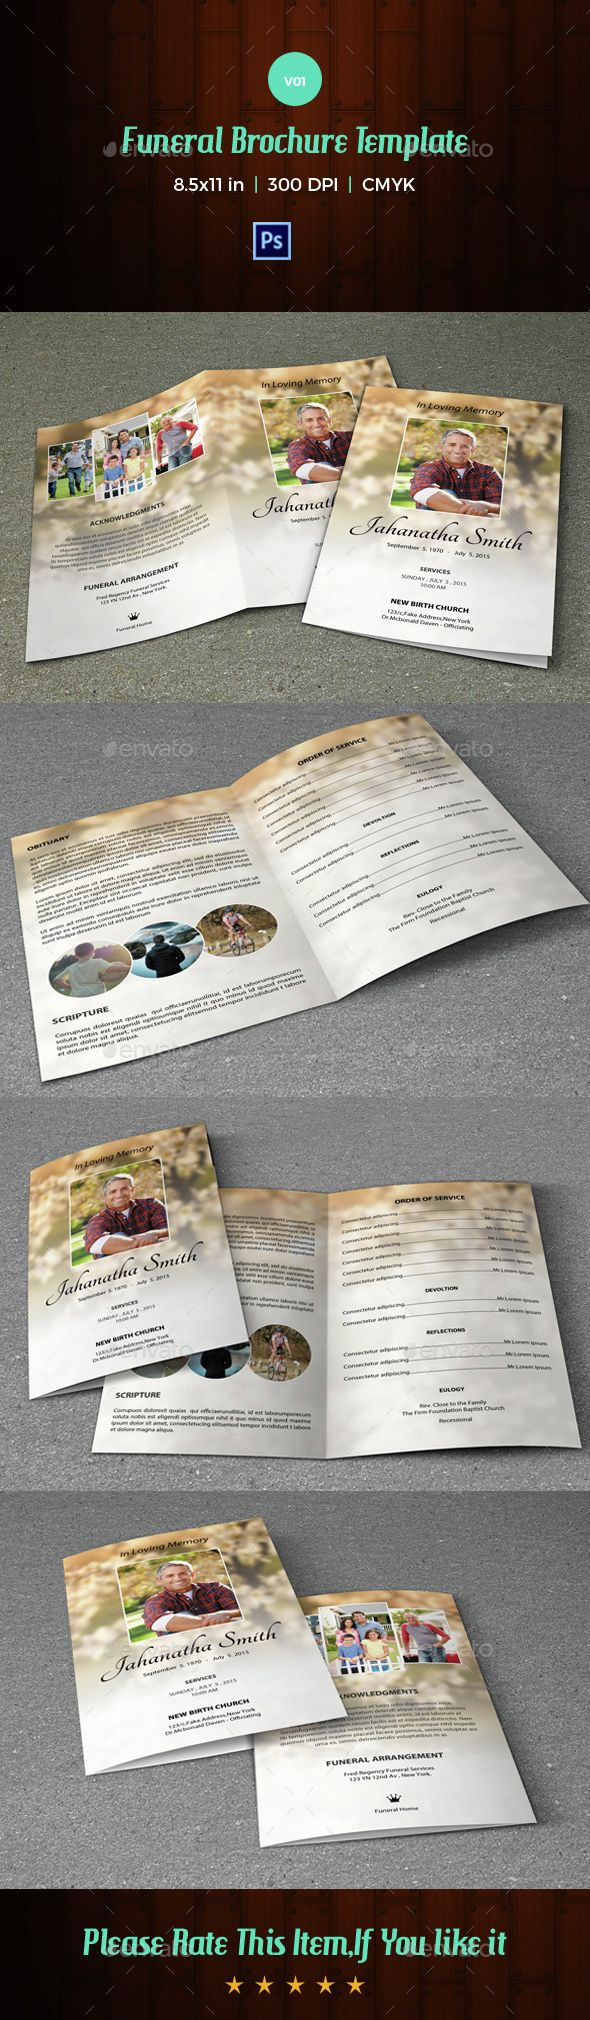 Funeral Program Template-V01 #funeral #template #obituary